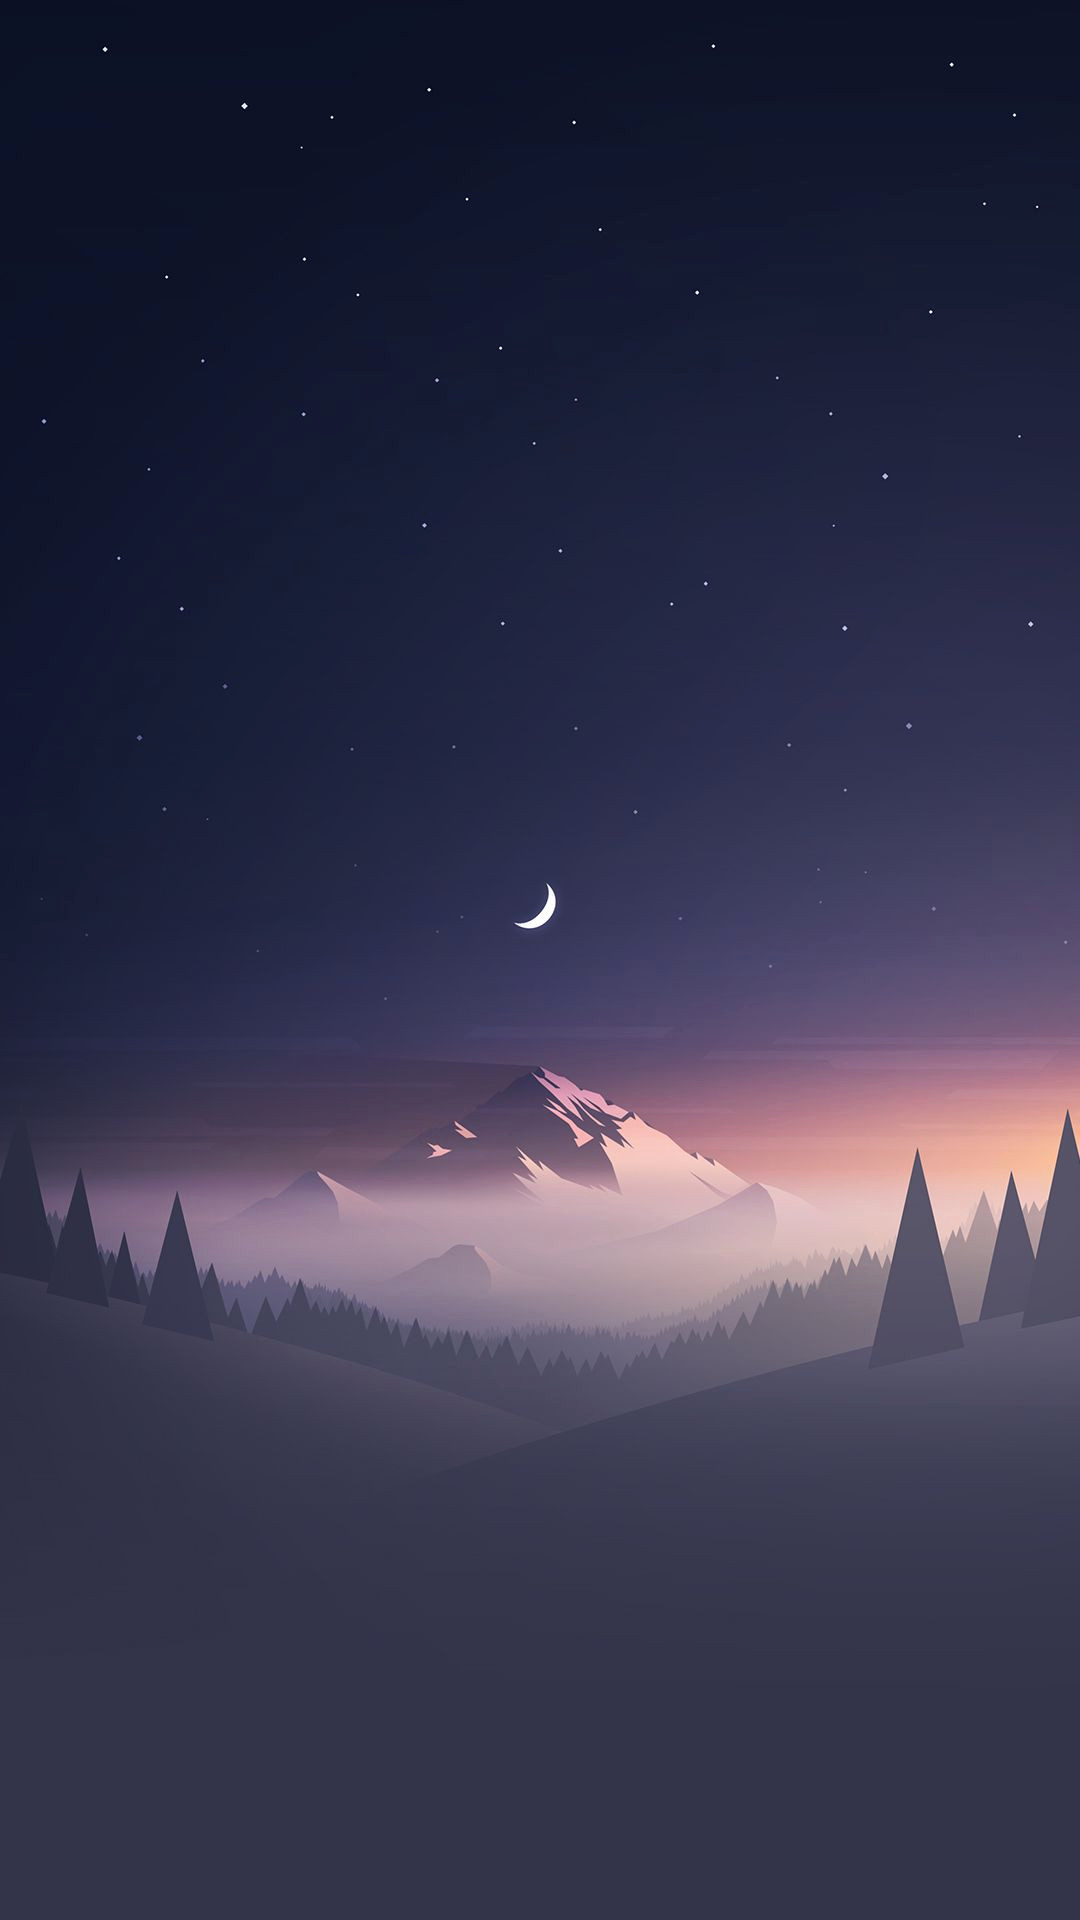 Res: 1080x1920, iPhone X Wallpapers Size Luxury Stars and Moon Winter Mountain Landscape  iPhone 6 Wallpaper Of iPhone